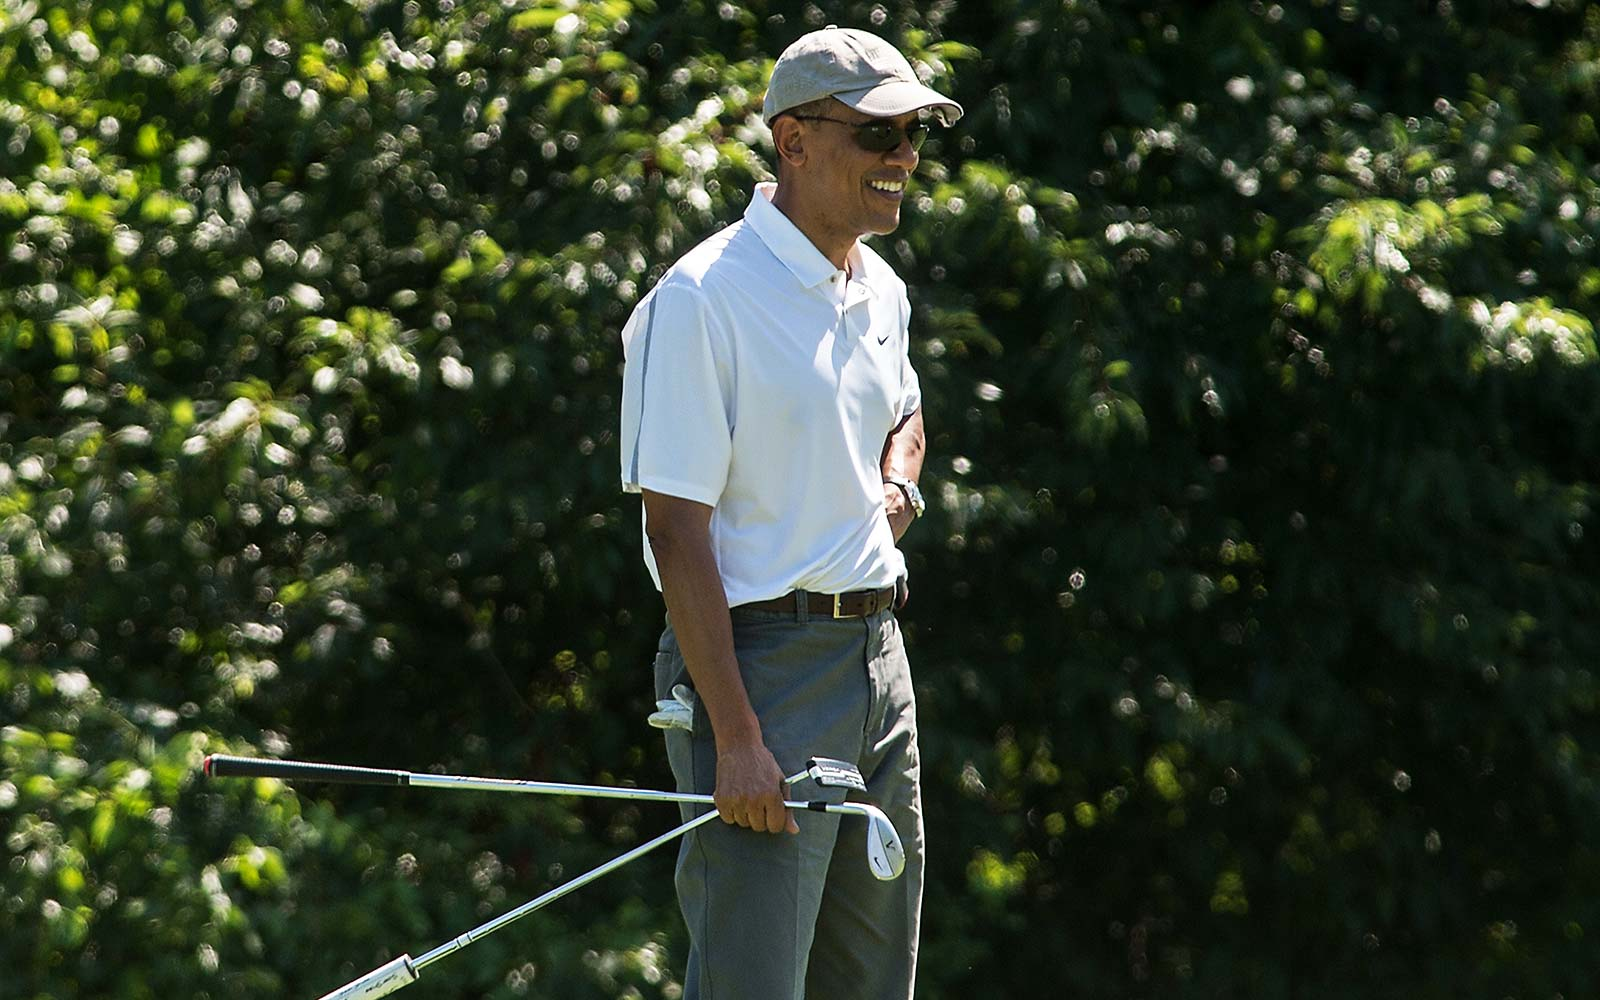 US President Barack Obama smiles as he watches his golfing partners putt on the first green while playing at the Farm Neck Golf Club at Martha's Vineyard, Massachusetts on the first day of the president's yearly summer vacation